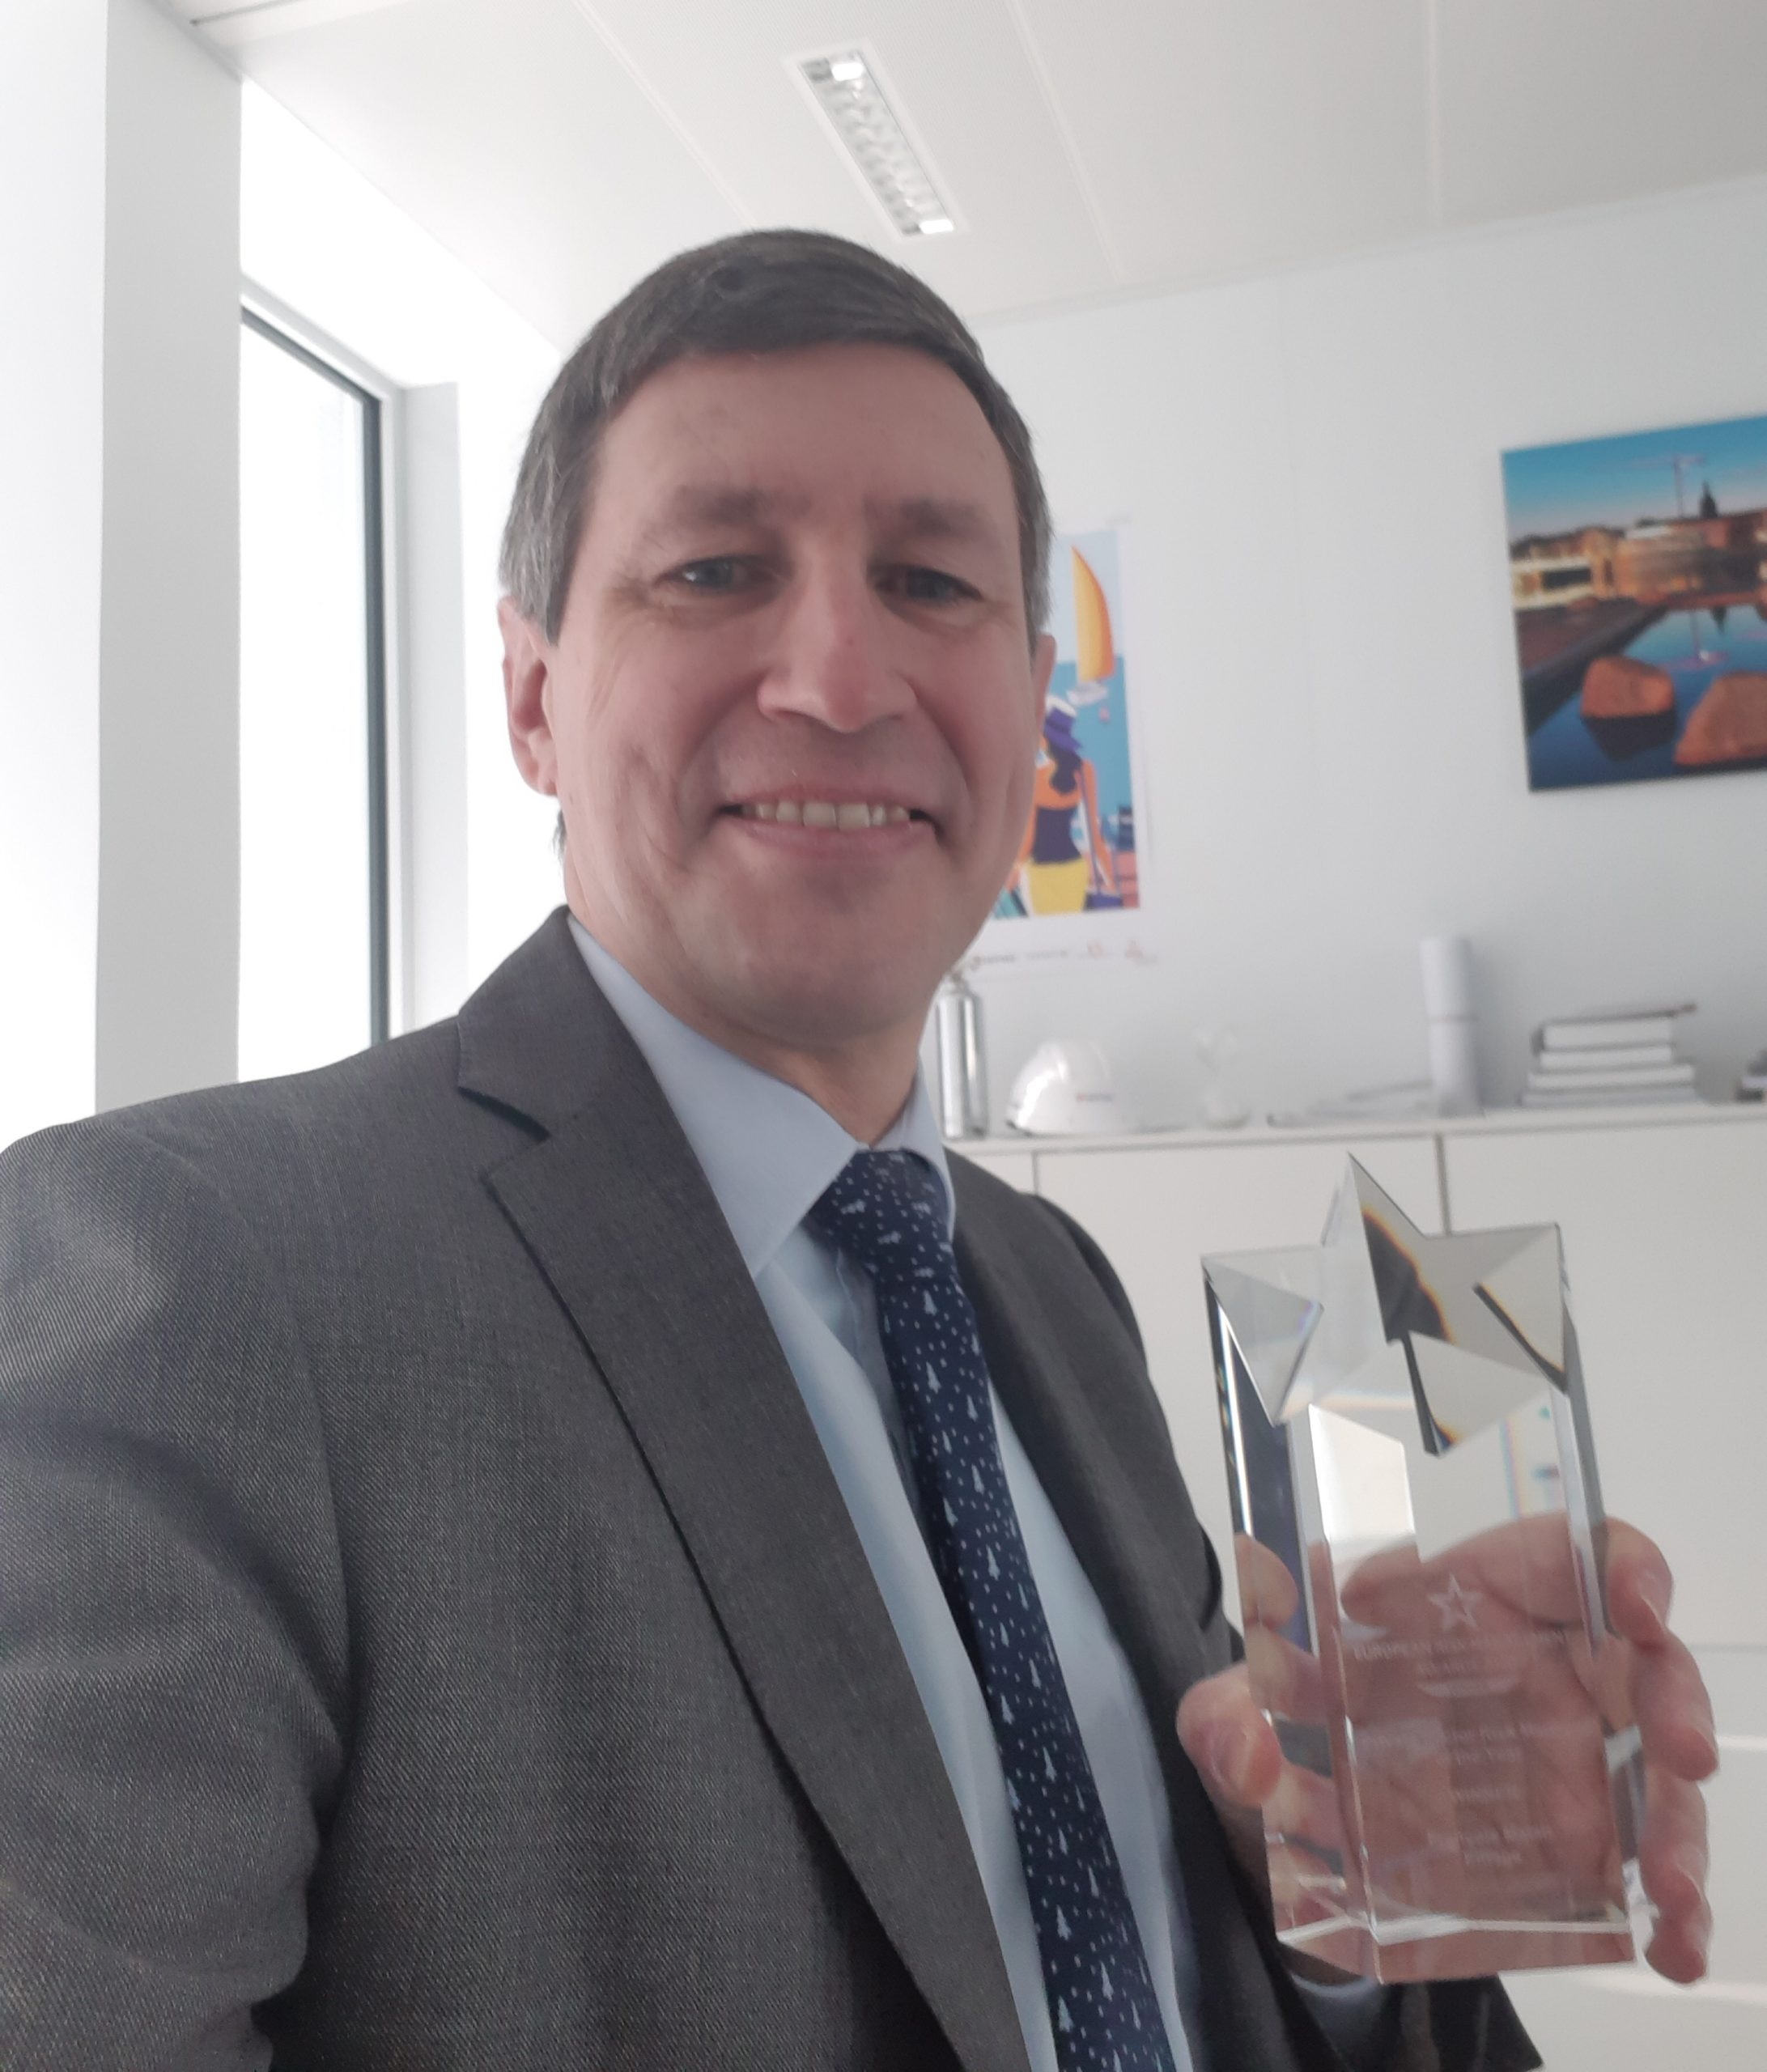 Francois Malan Risk Manager of the year 2020